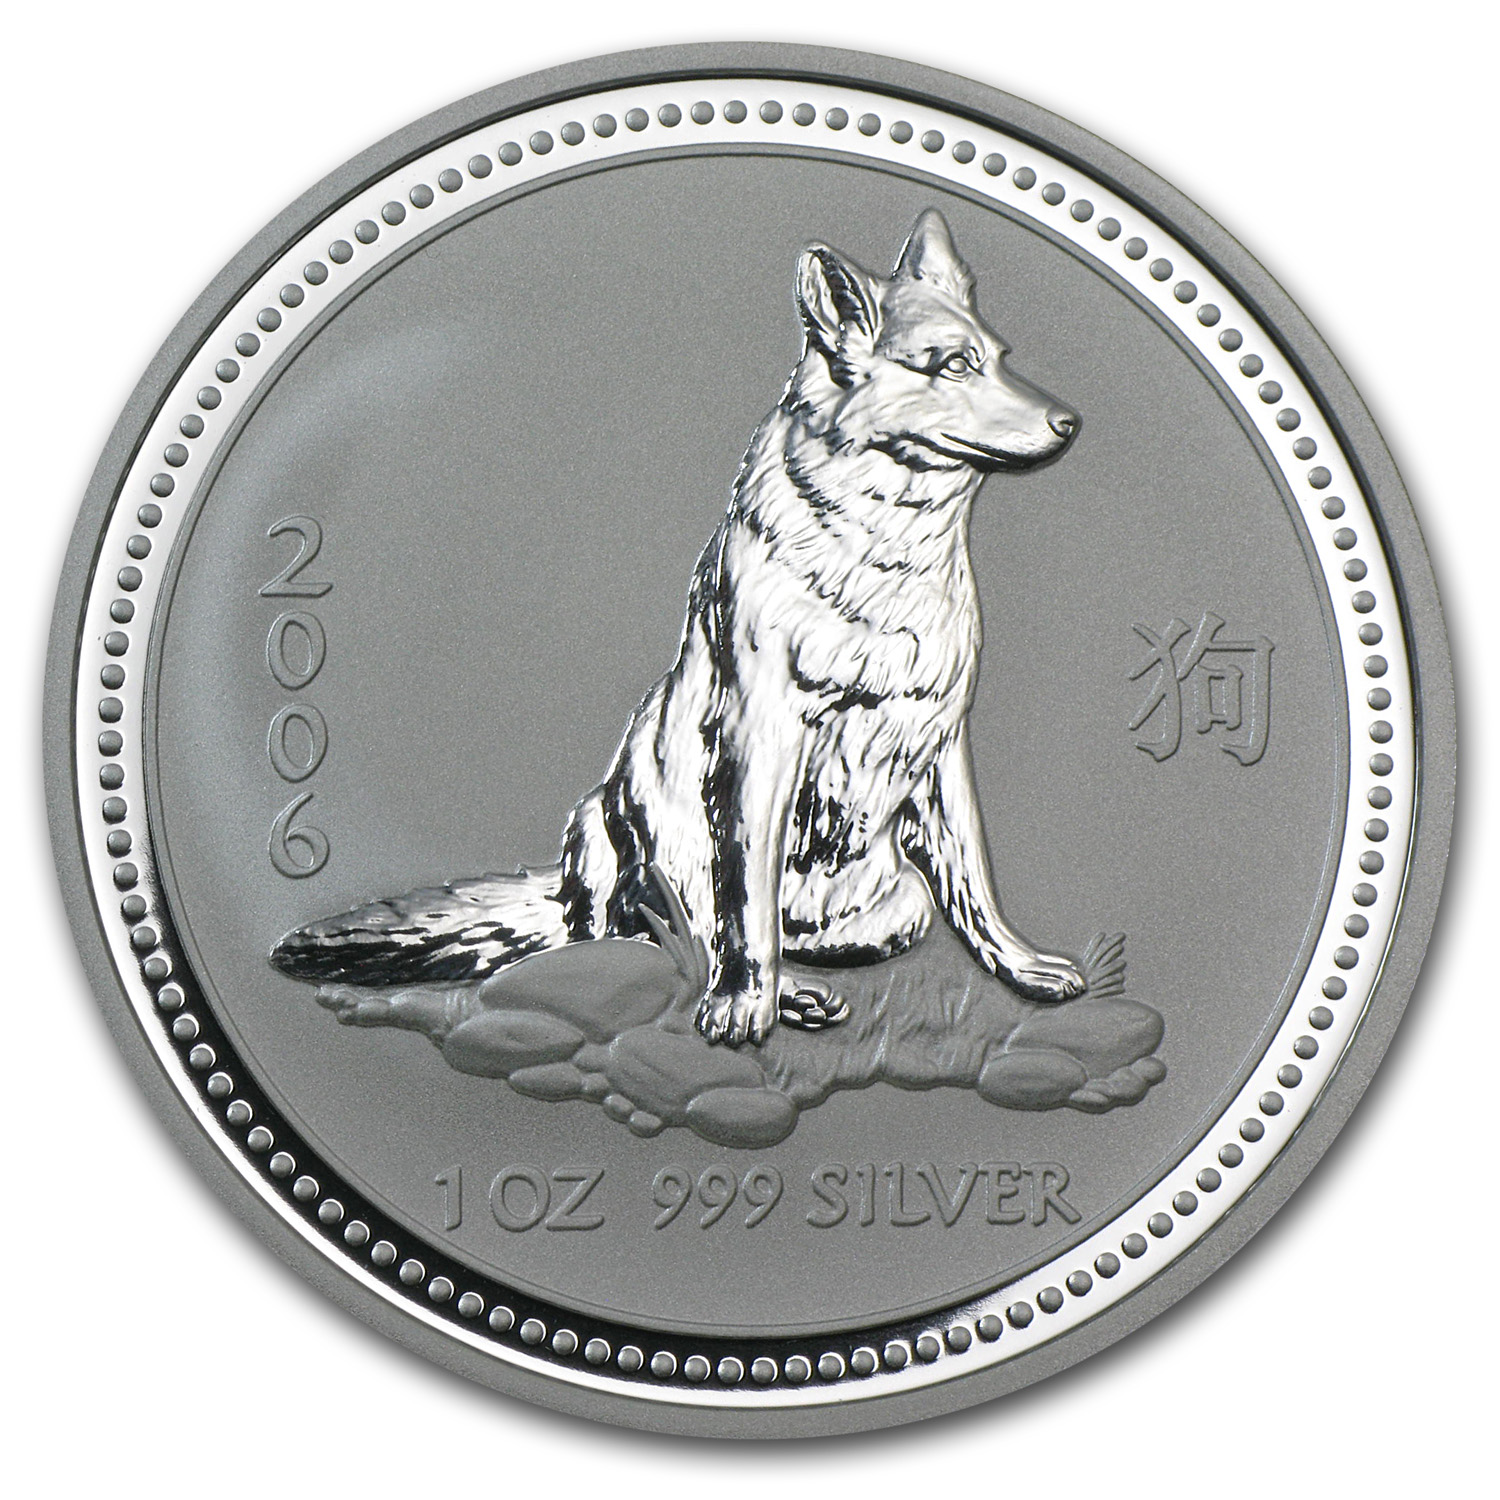 2006 Australia 1 oz Silver Year of the Dog BU